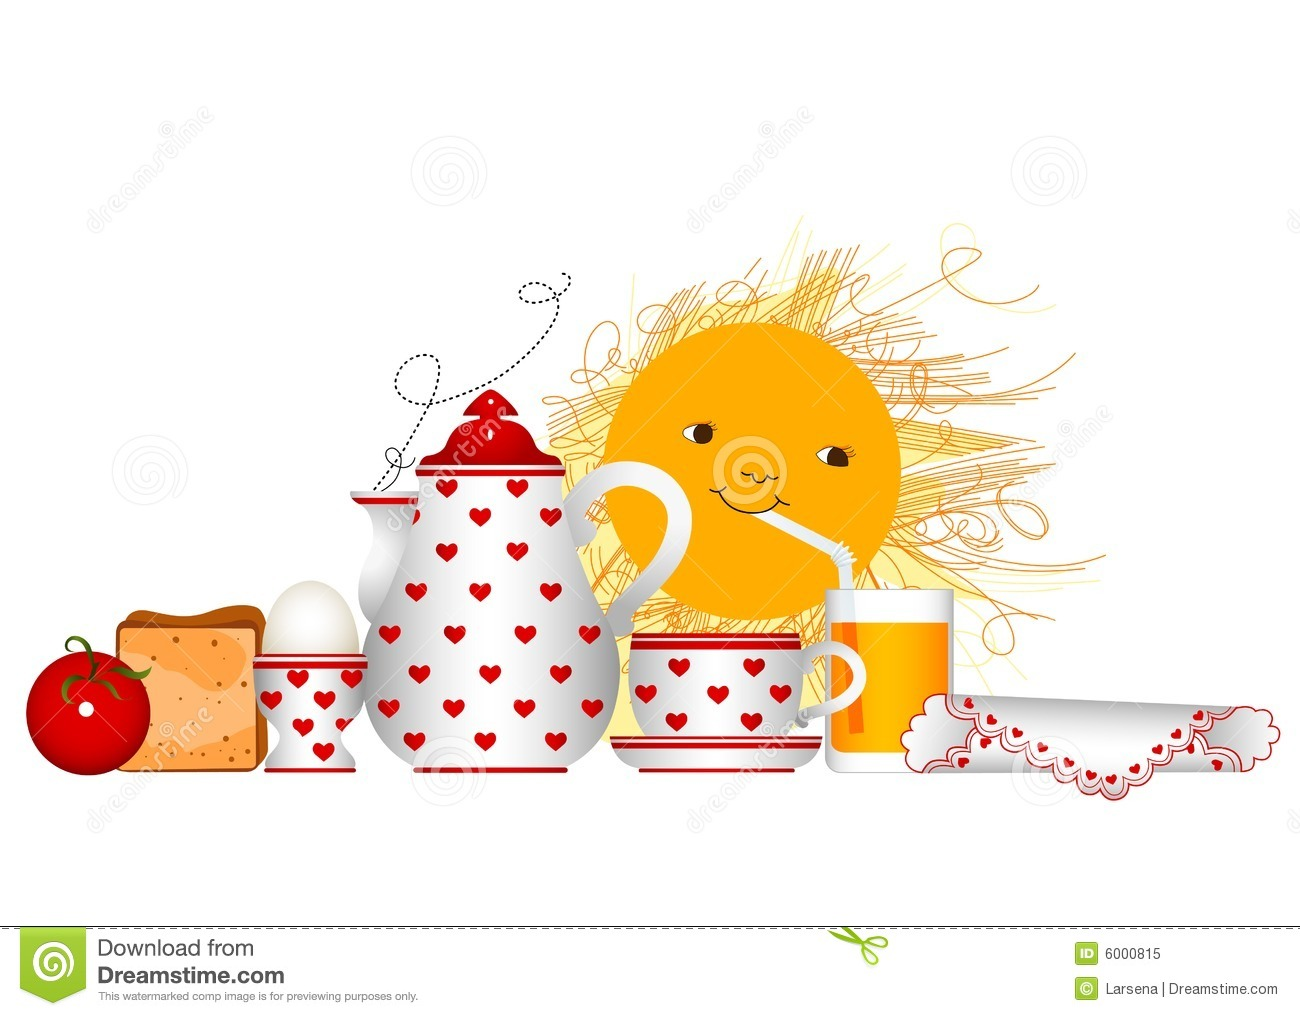 Breakfast Time Royalty Free Stock Photo - Image: 6000815